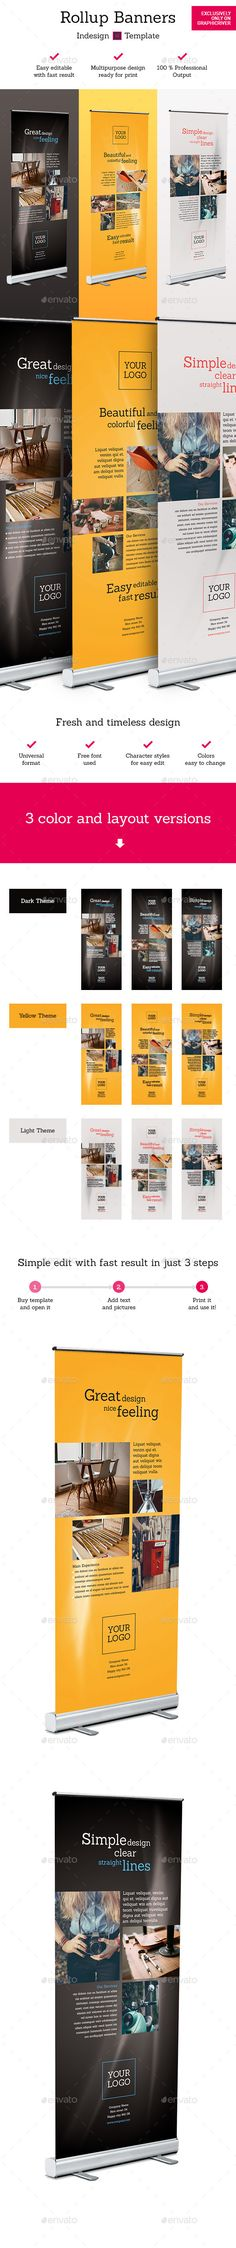 Buy Rollup Stand Banner Display Indesign Template by petovexclusive on GraphicRiver. Rollup Stand Banner Display Indesign Template Simple and modern multipurpose rollup banner stand indesign print t. Letterhead Template, Indesign Templates, Print Templates, Brochure Template, Elegant Business Cards, Cool Business Cards, Banner Template, Flyer Template, Rollup Display